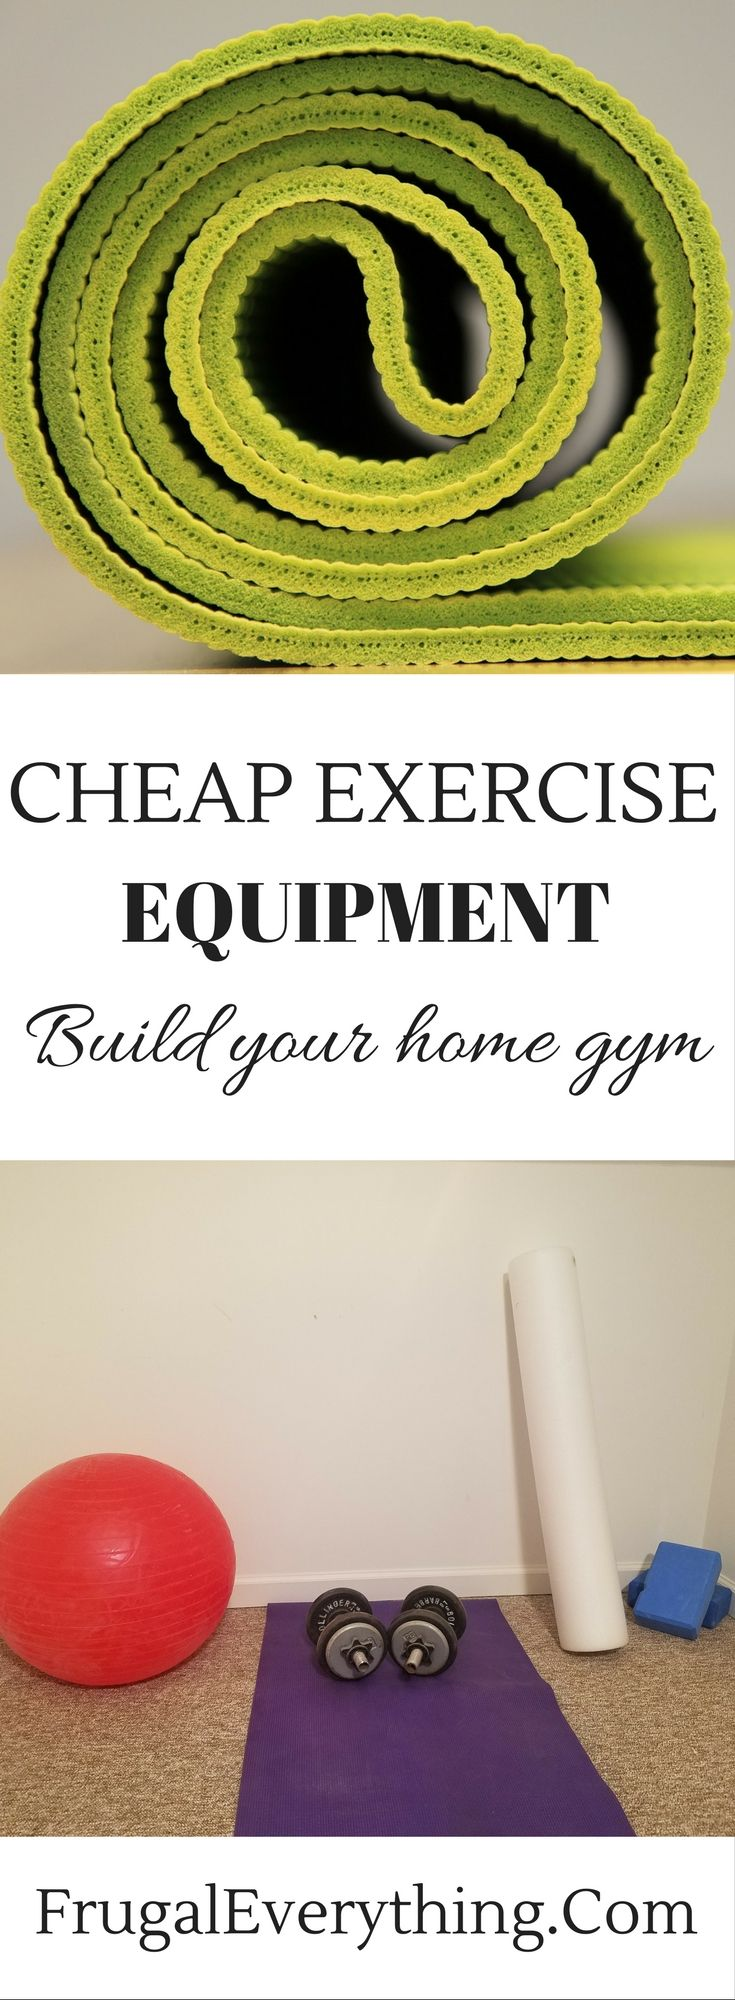 Having a home gym doesn't have to break the bank.  You can build a home gym for under $200 with these cheap (but reliable) pieces of exercise equipment.